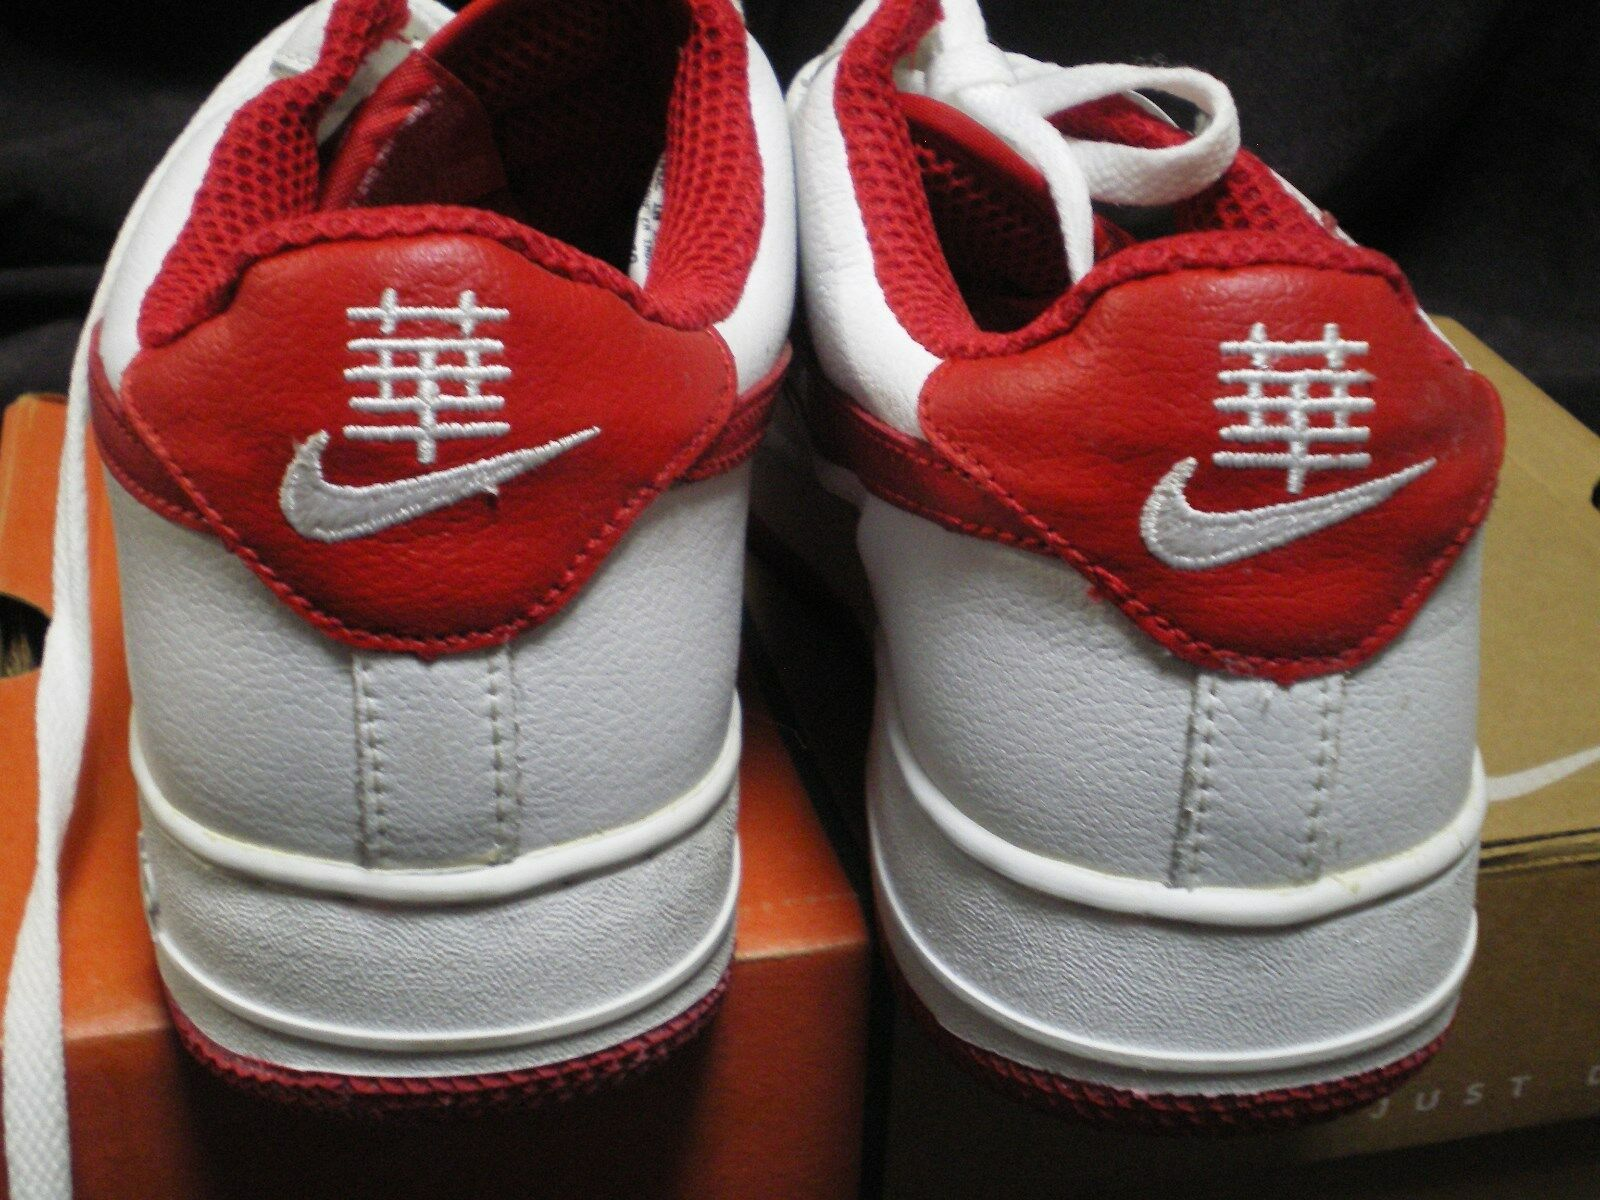 NIKE AIR FORCE 1LOW 624040-161 Asia Limited  US10.5 Japan